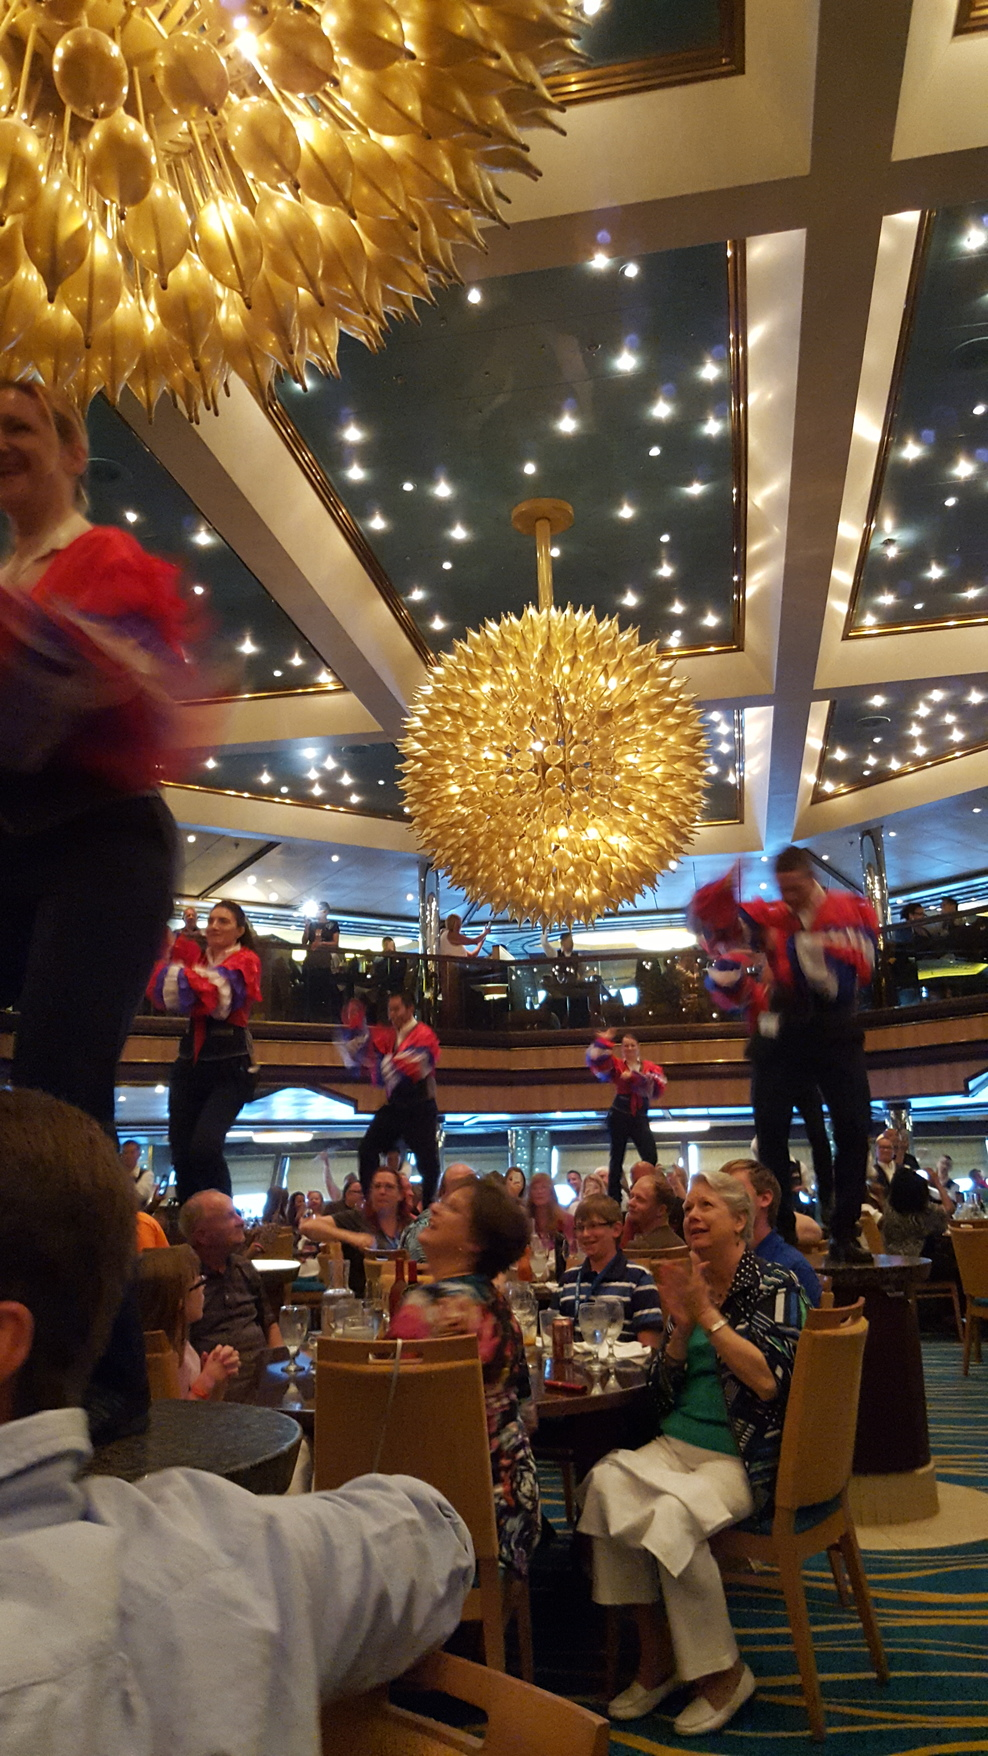 Another fun shot of the waiters entertaining us - food was good but service...